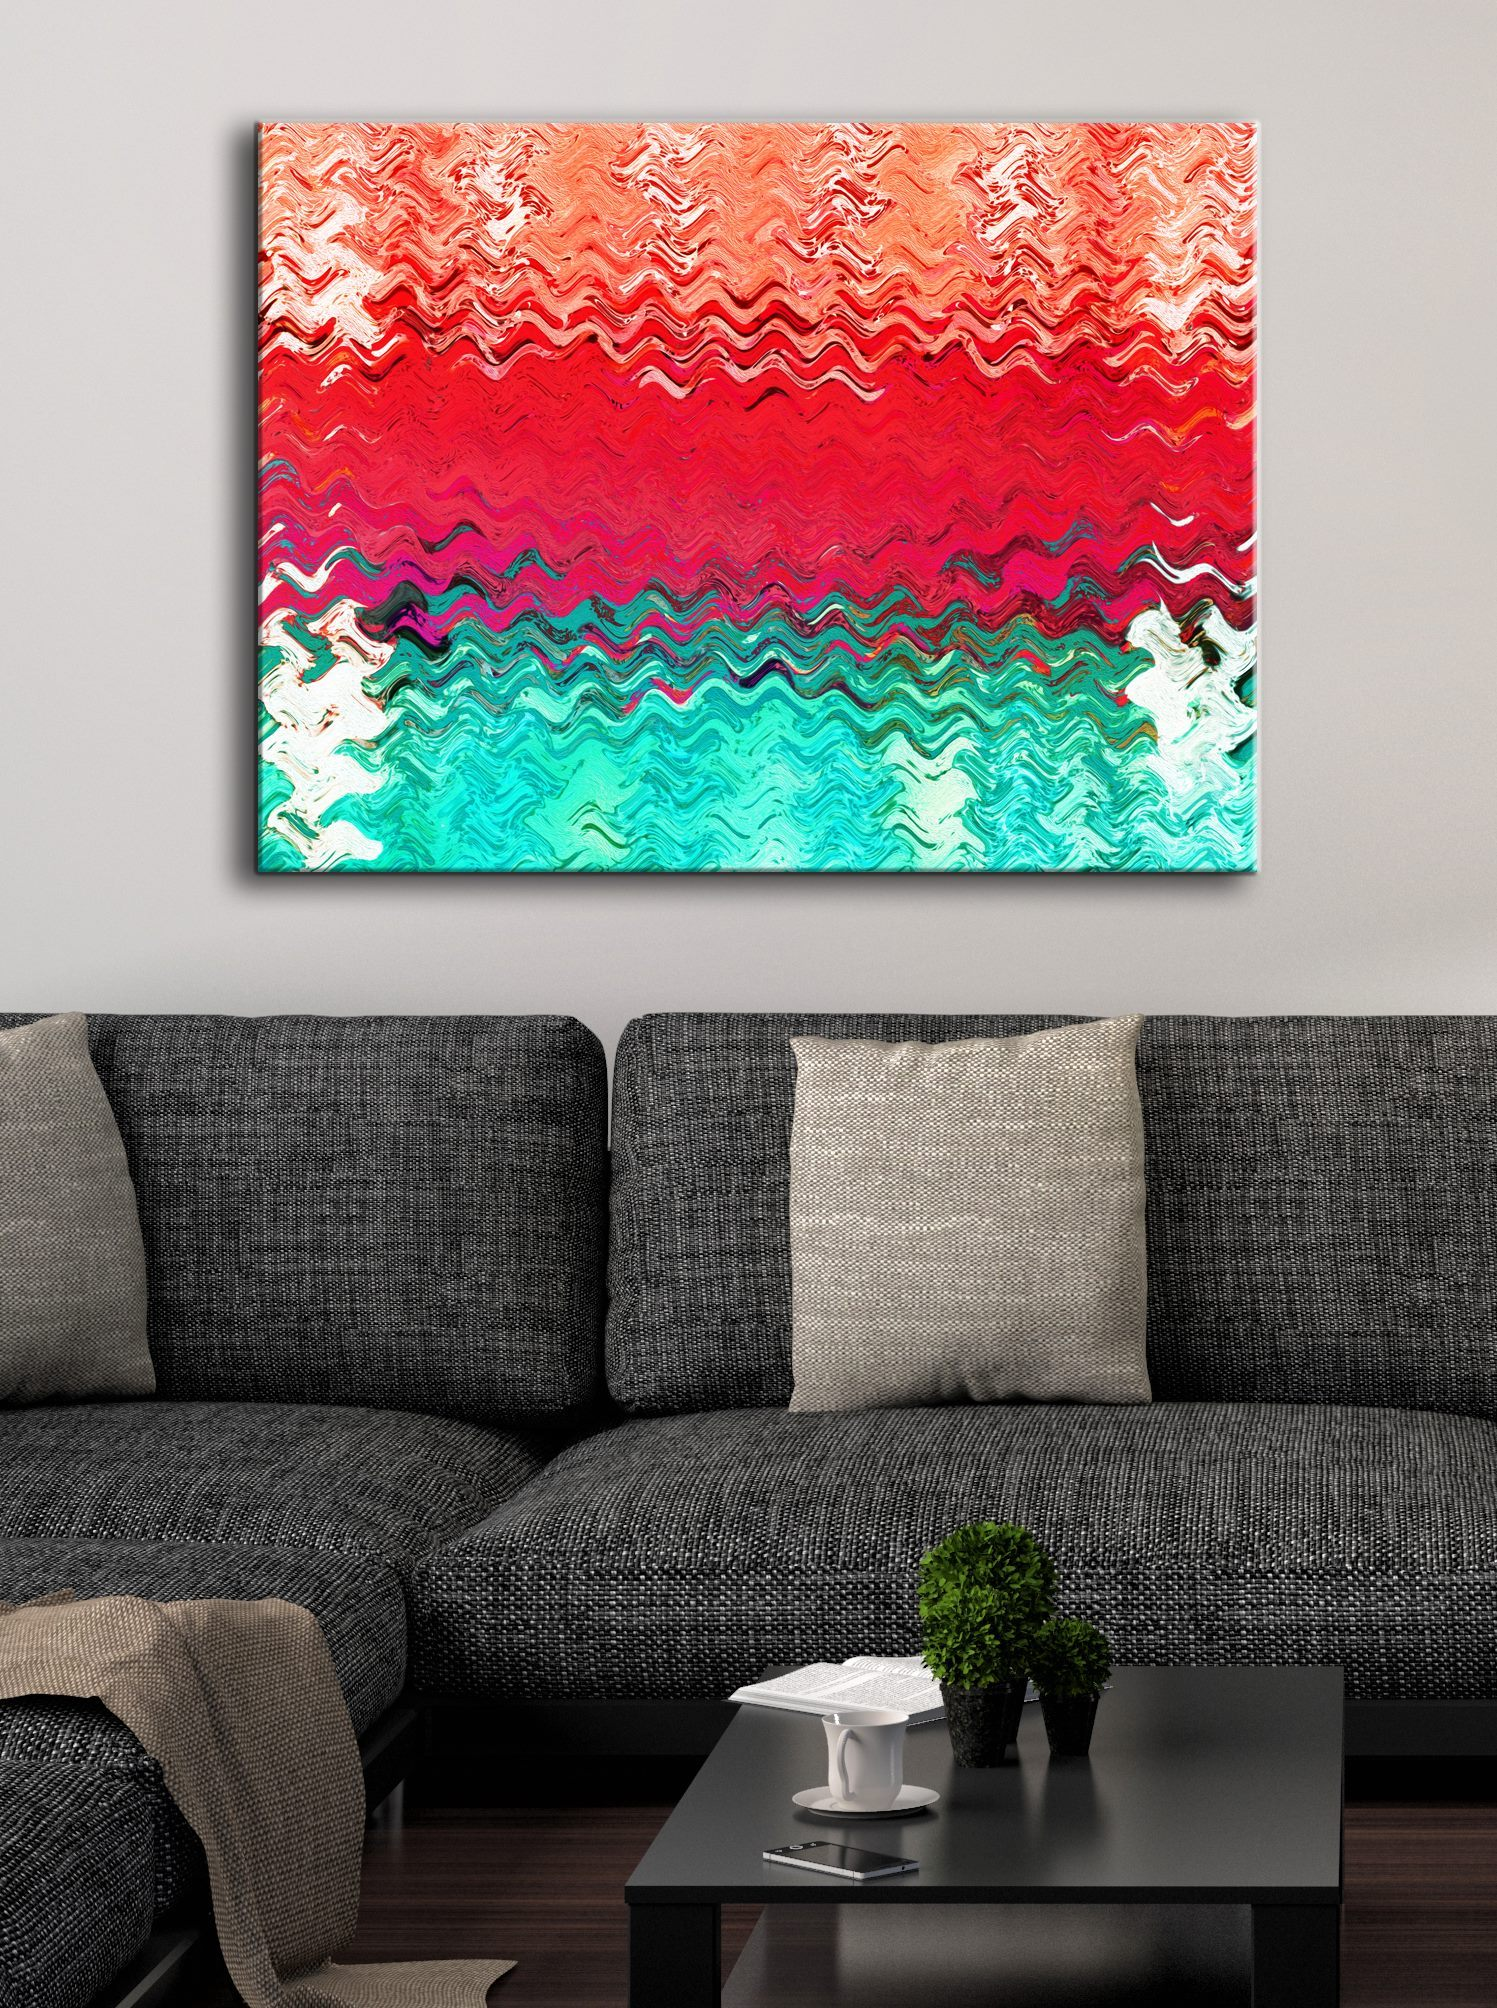 Abstract Wall Art: Rad Wave (Wood Frame Ready To Hang)